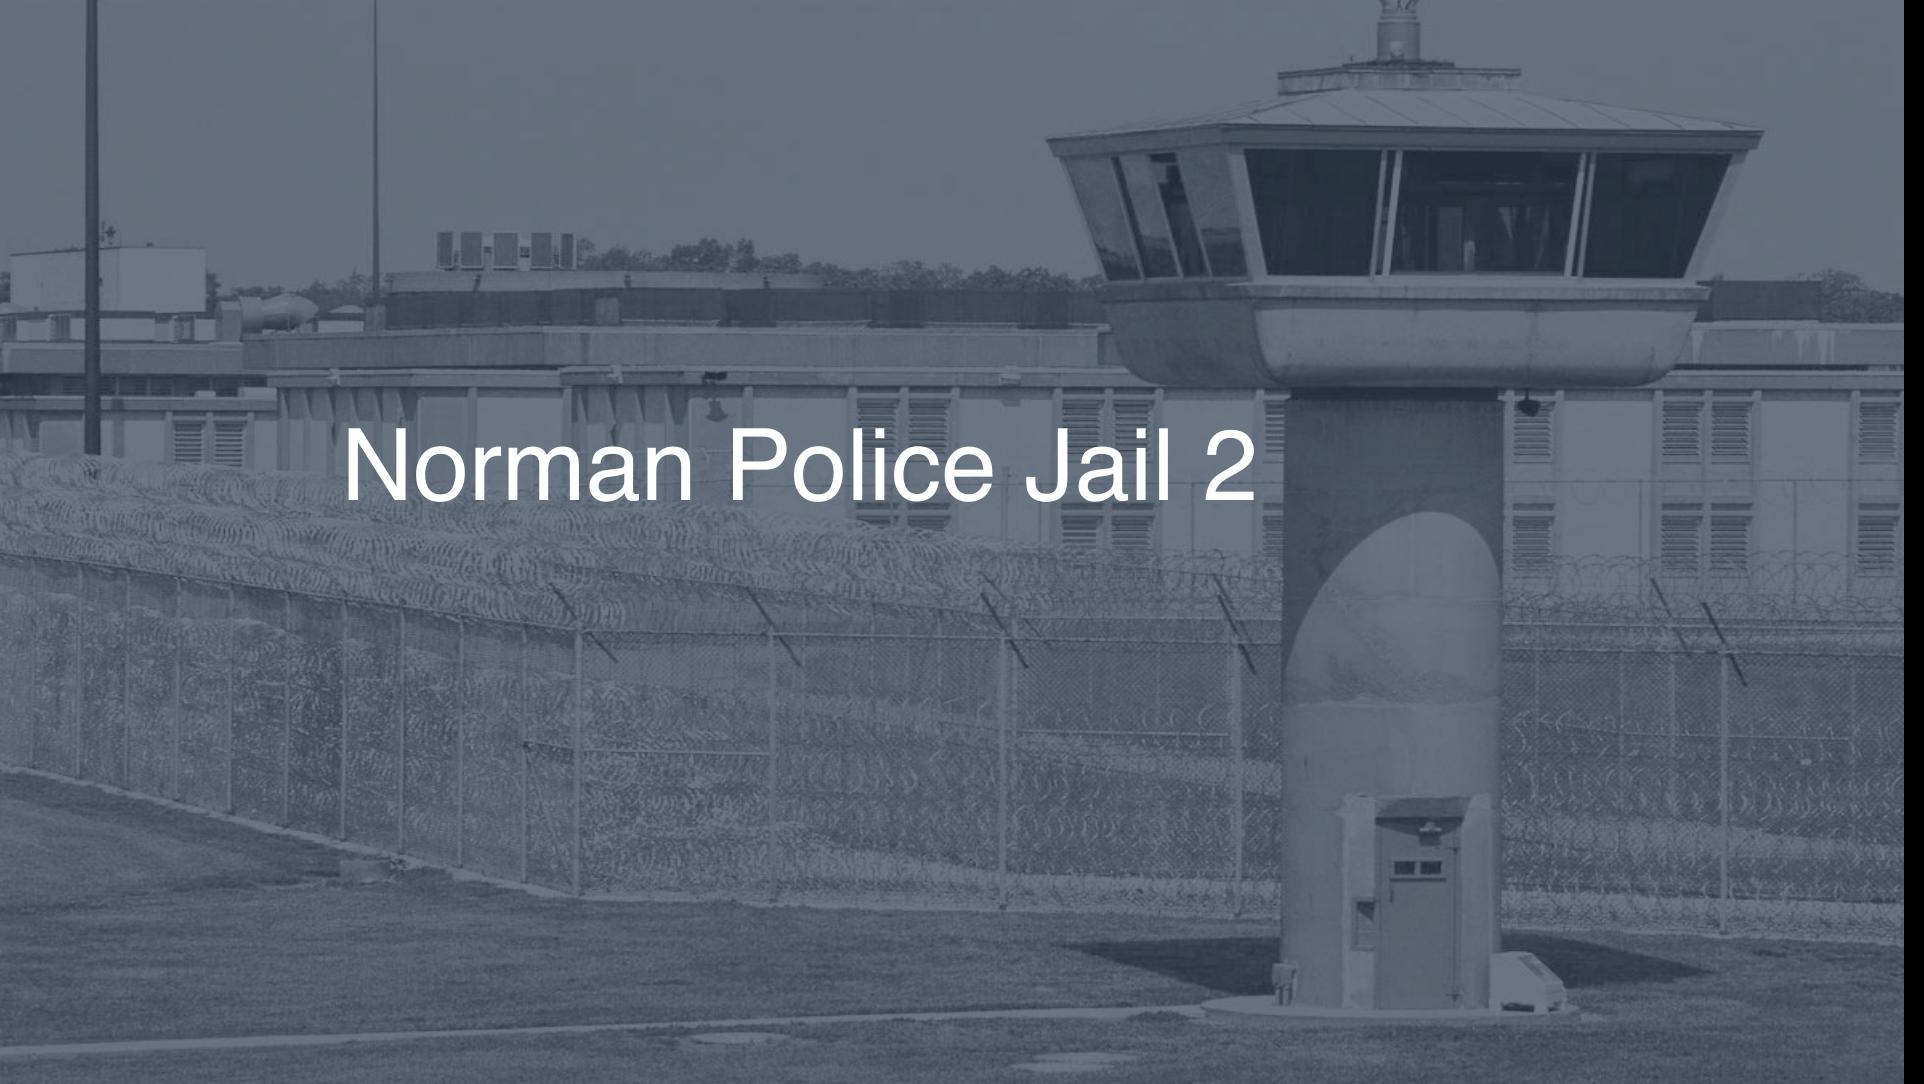 Norman Police Jail | Pigeonly - Inmate Search, Locate